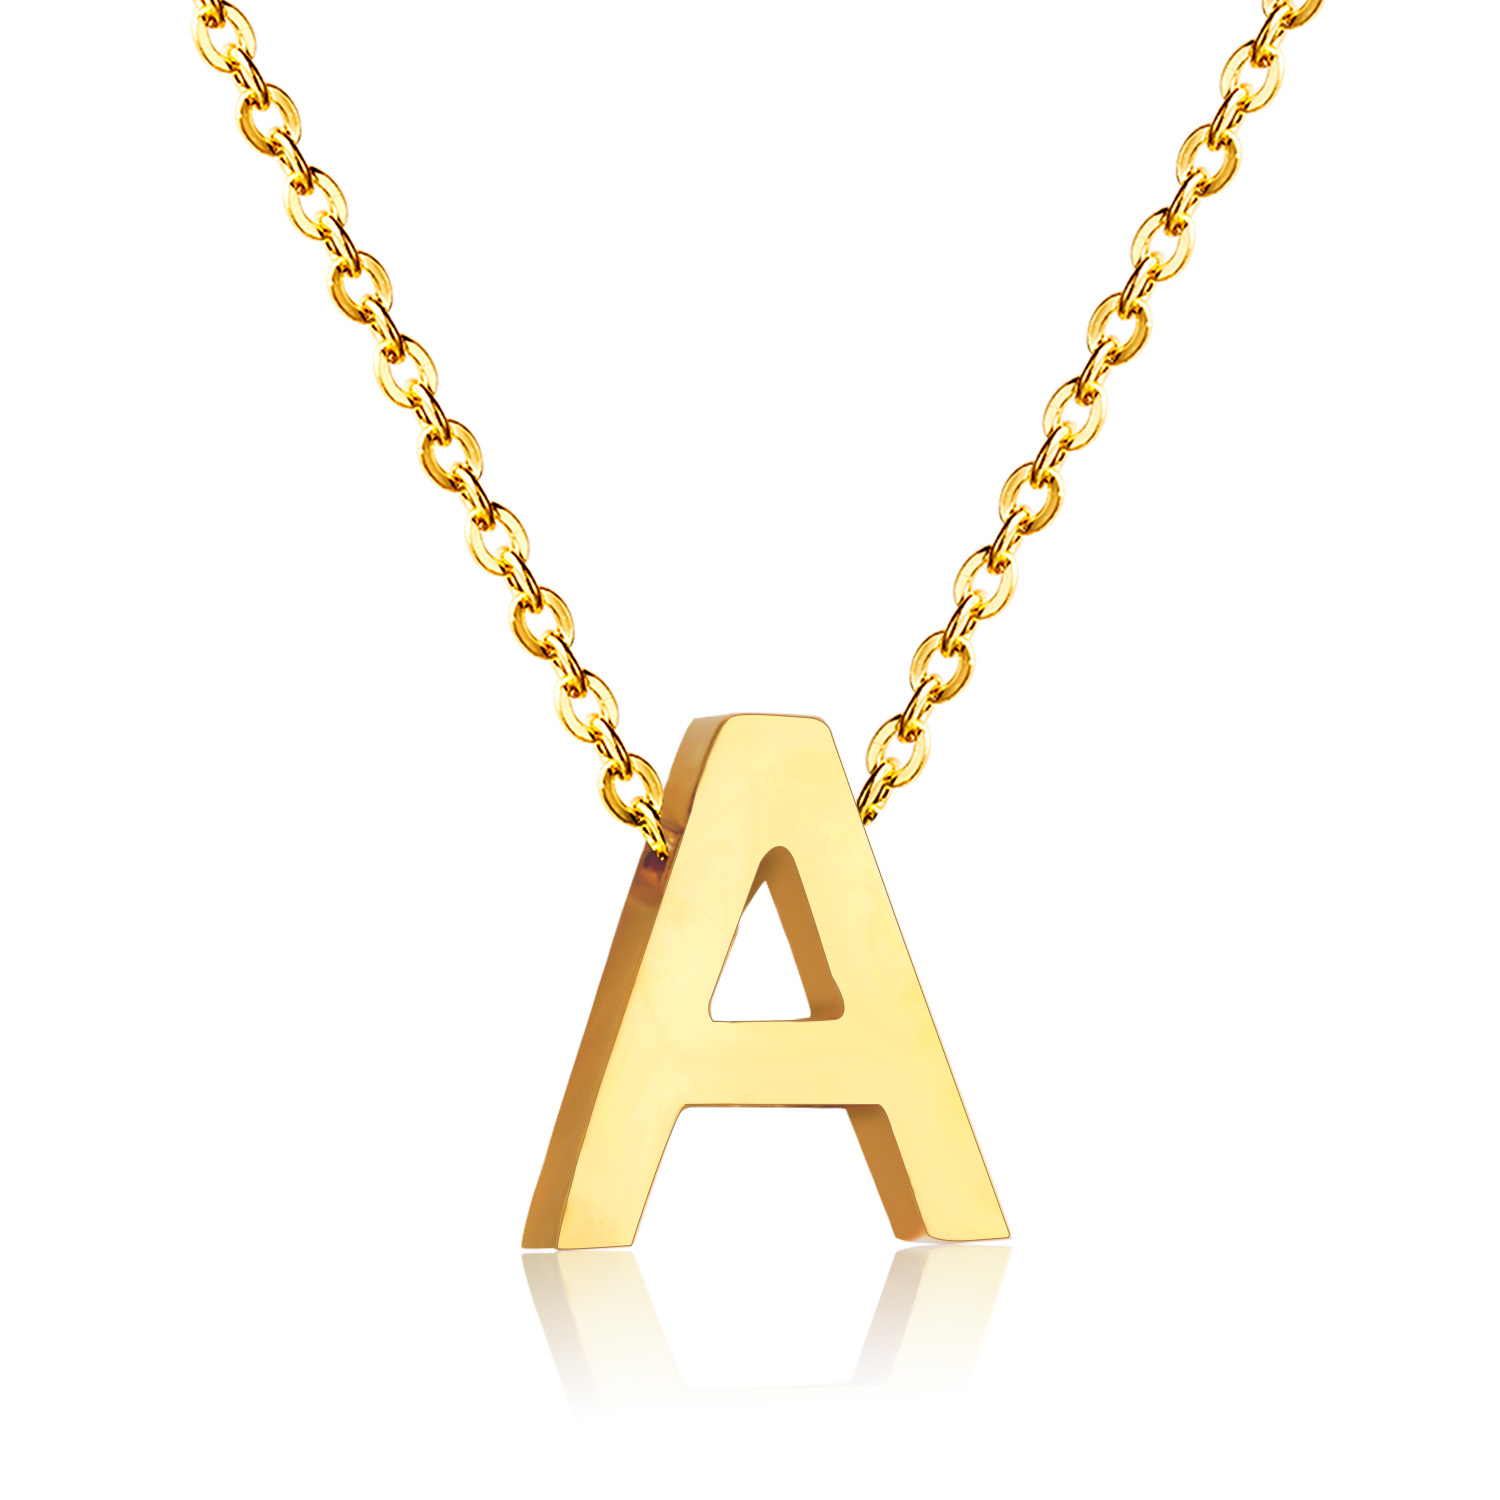 fashion stainless steel initial necklace silver gold